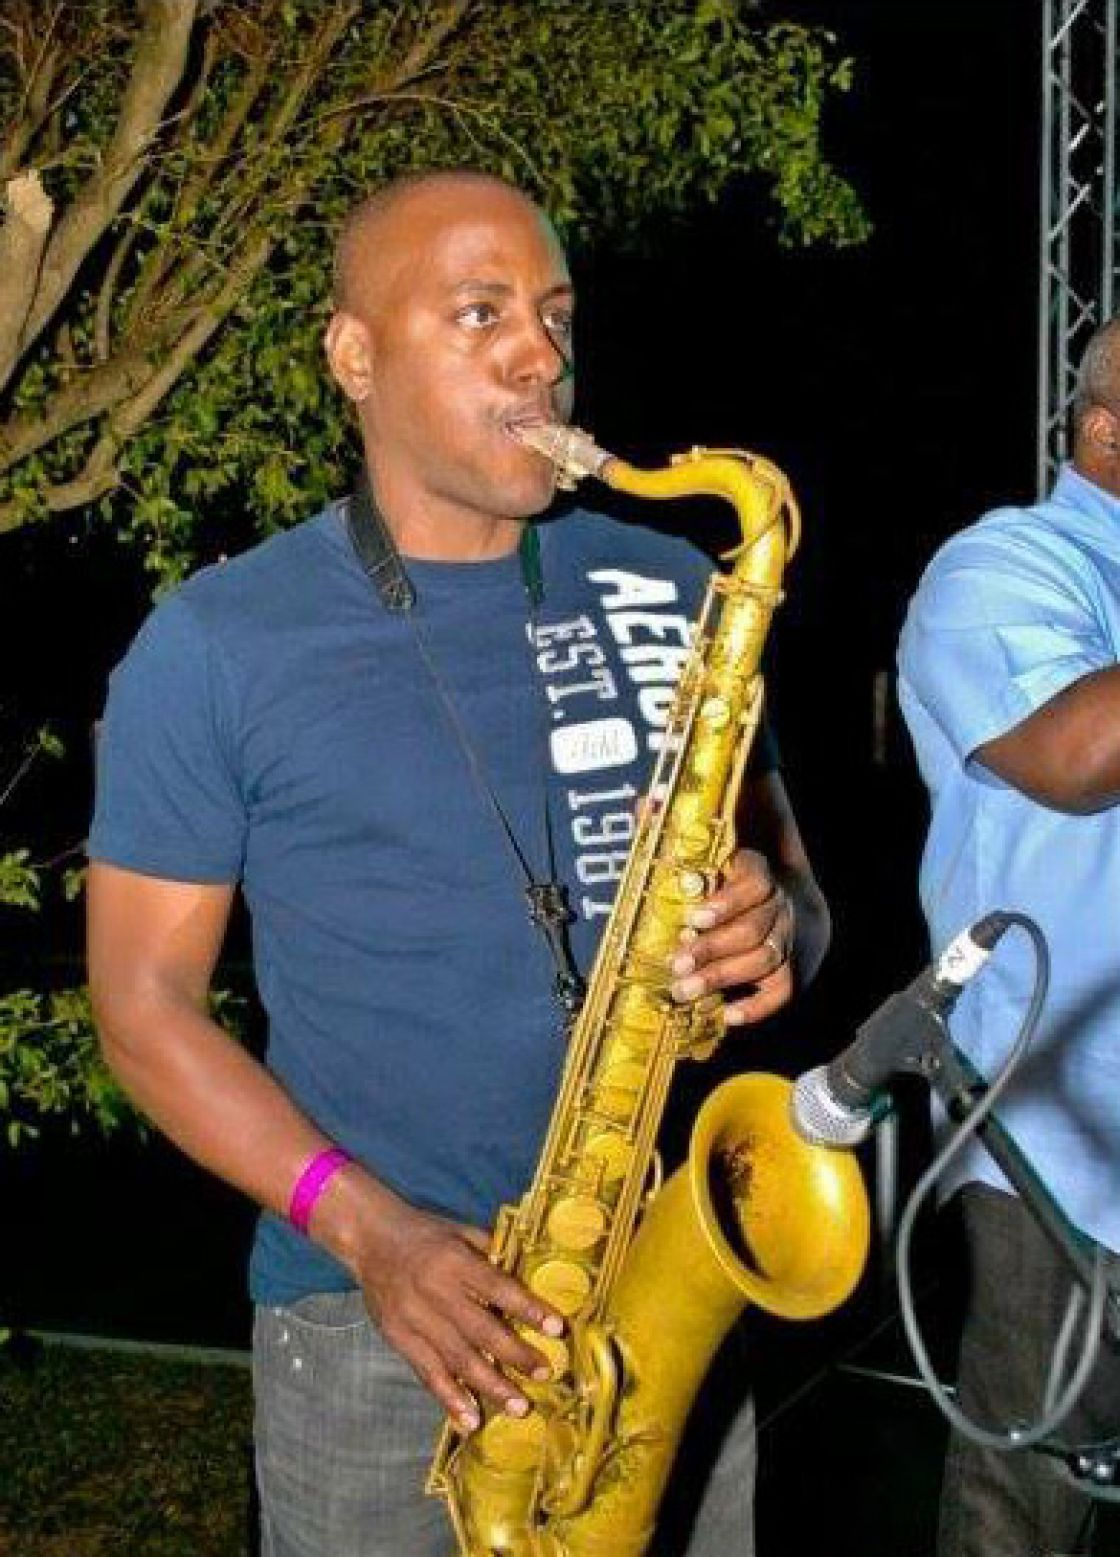 Soca Sax by Oral Rodriquez on super producer Stadic beat!